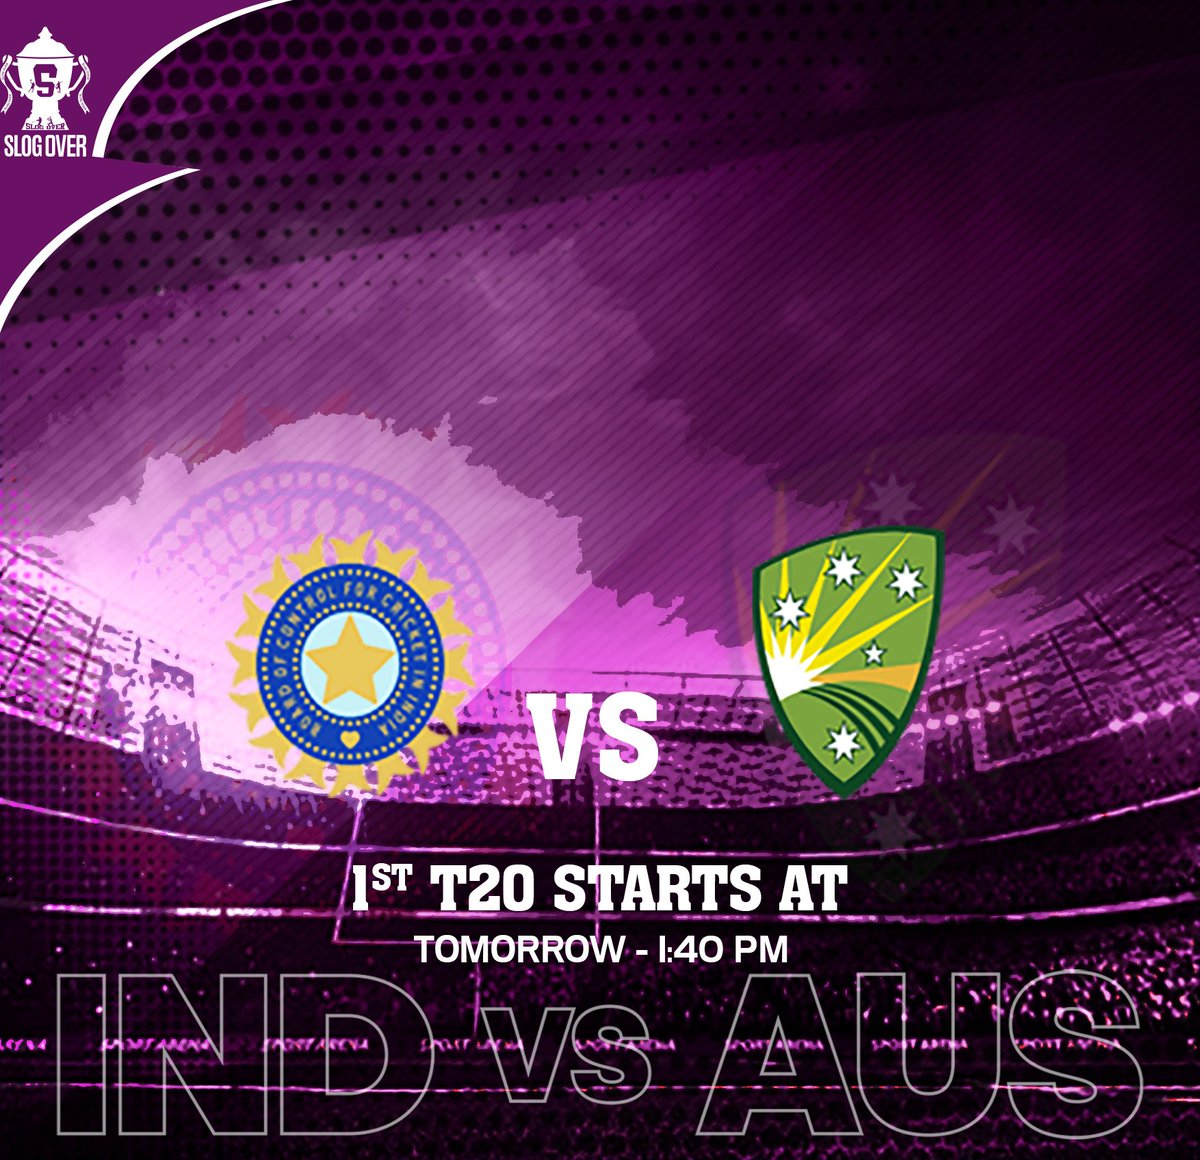 Countdown begins for tomorrow's T20 match between India and Australia...so guys, look through the timing...Hope, it will charm all cricketfans! Be with @slogover24  #cricket #cricketlovers #cricketindia #indiancricket #T20 #T20Cricket #IndiaVsAus #AUSvsIND